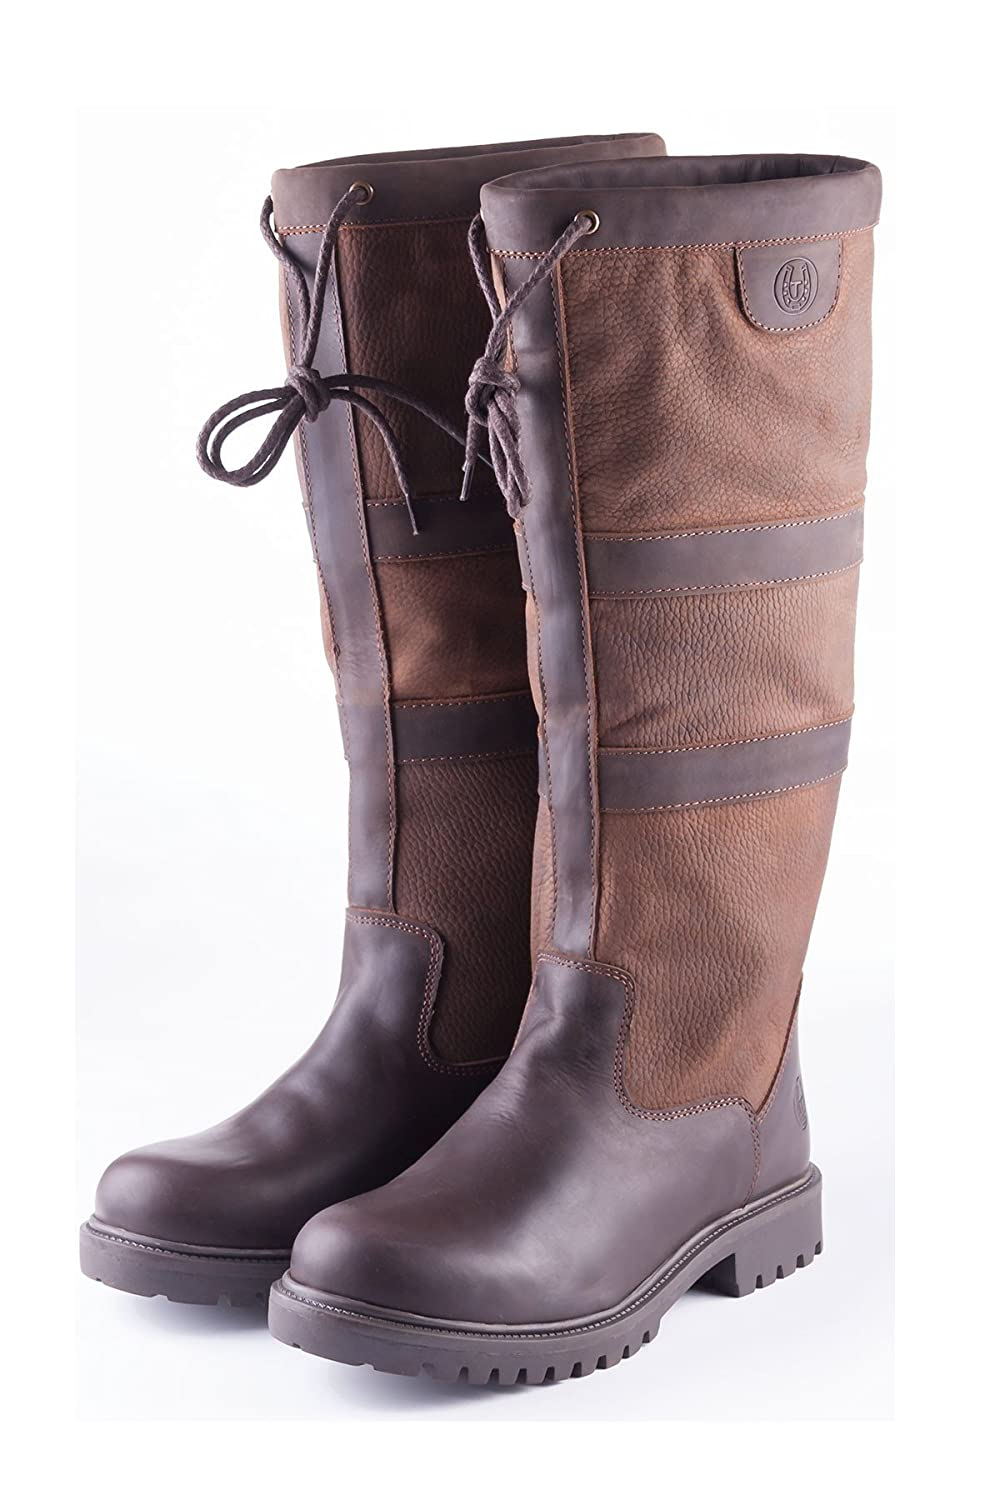 Rydale Tullymore Leather Country & Equestrian Riding Boots Oak)